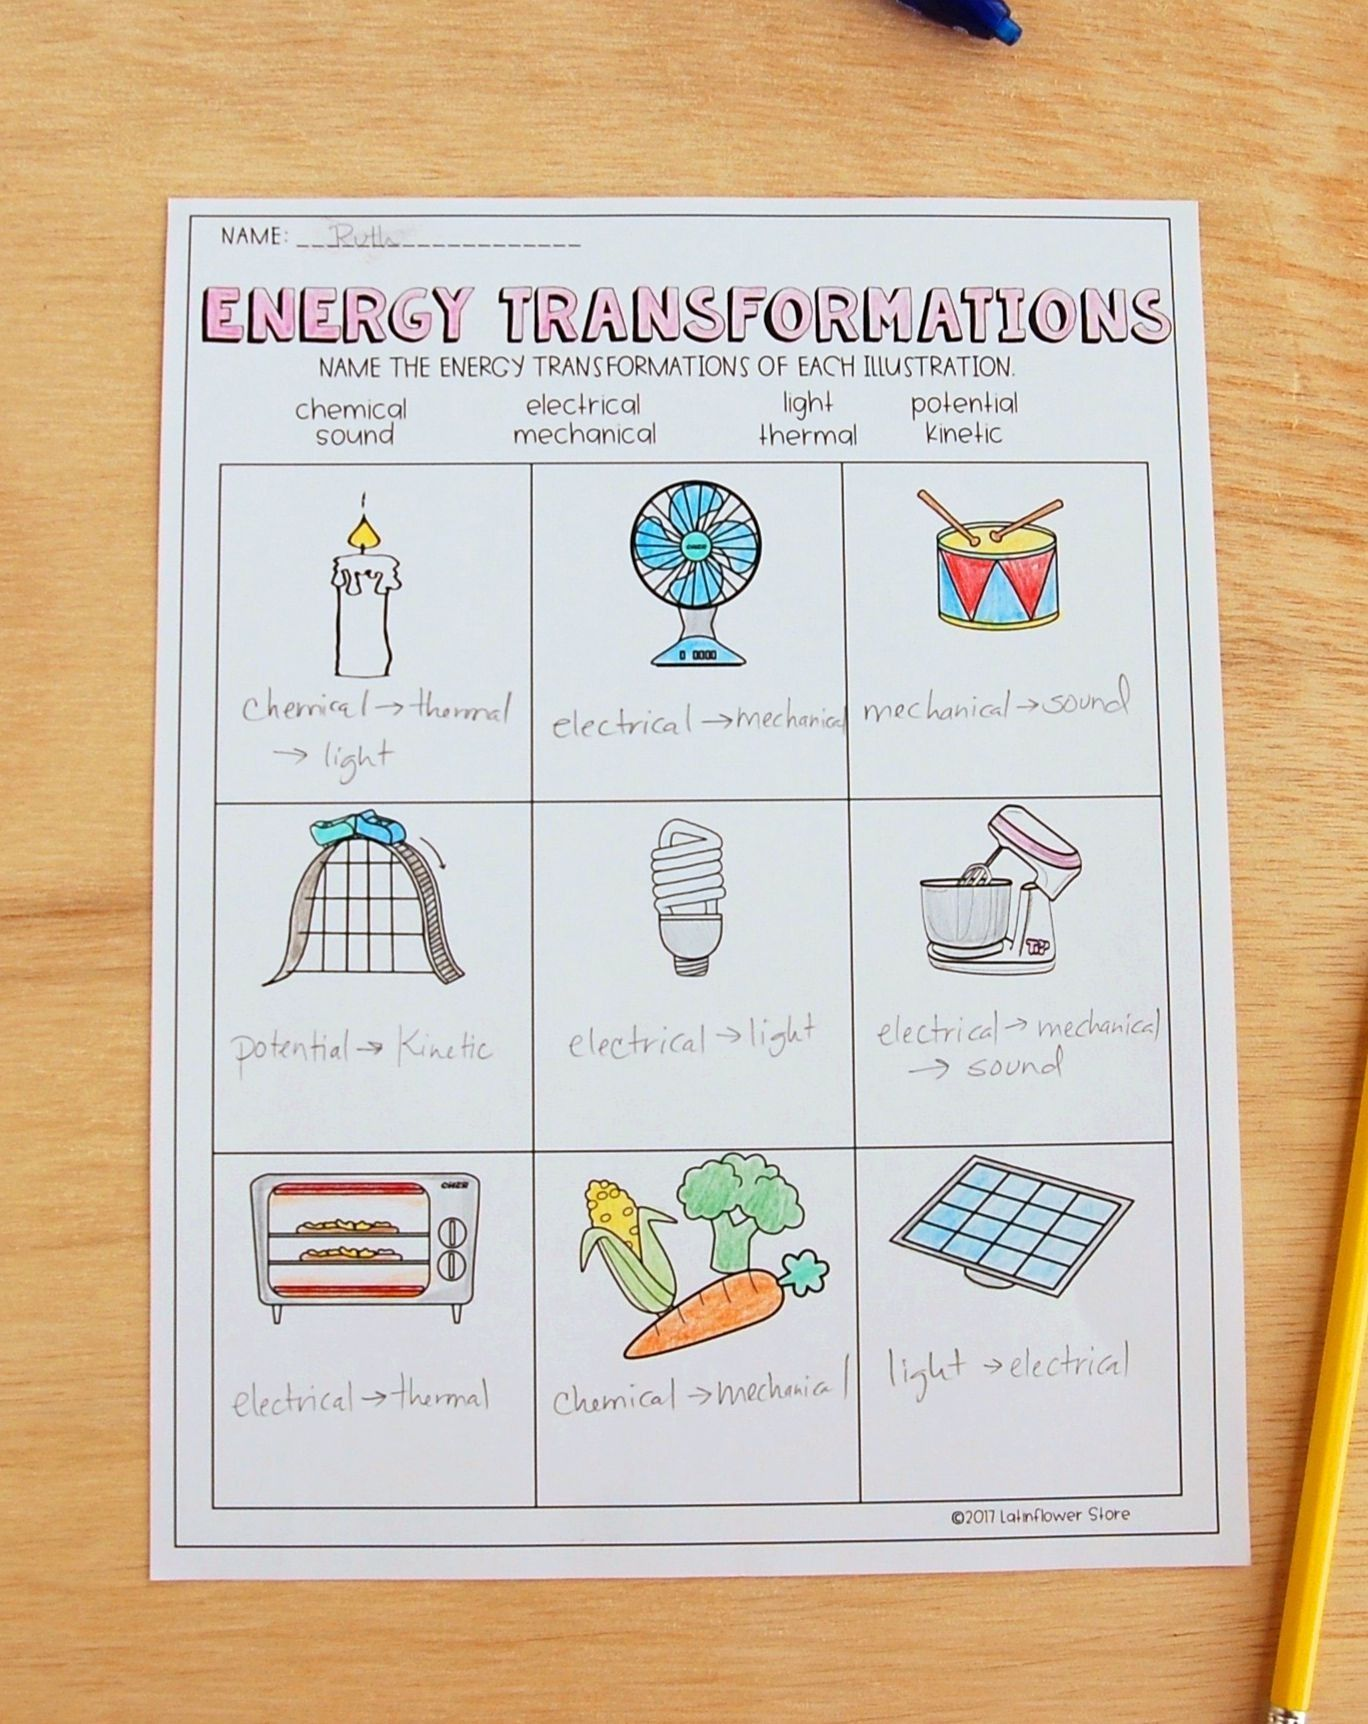 small resolution of Energy Transformations Worksheet   Energy transformations